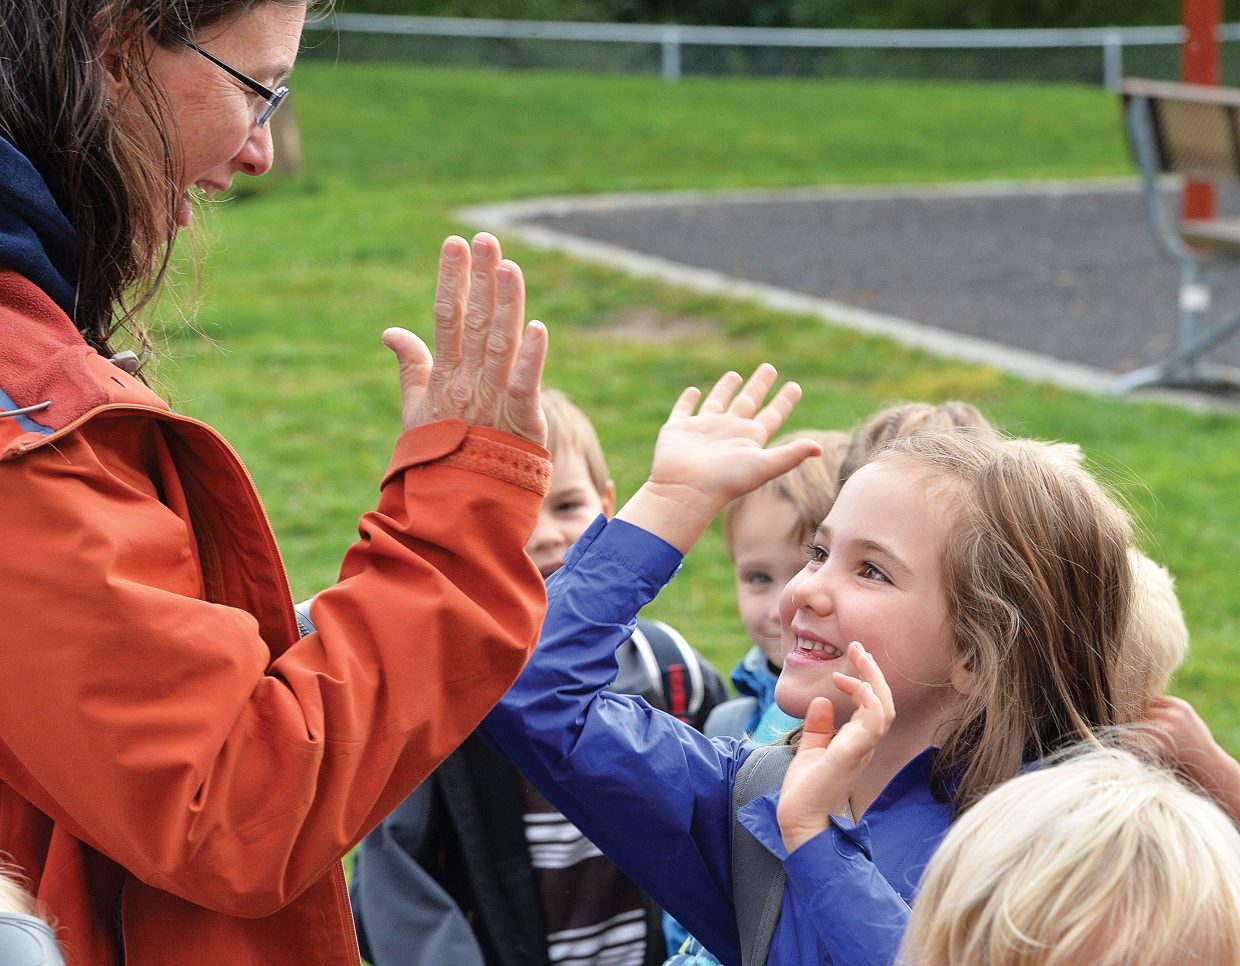 Liza Rossi gives her daughter, Shea, a high-five before the kindergartner headed off to her first day of class at Soda Creek Elementary School on Wednesday morning. While most of the school district began classes on Tuesday, kindergartners didn't start classes until Wednesday.